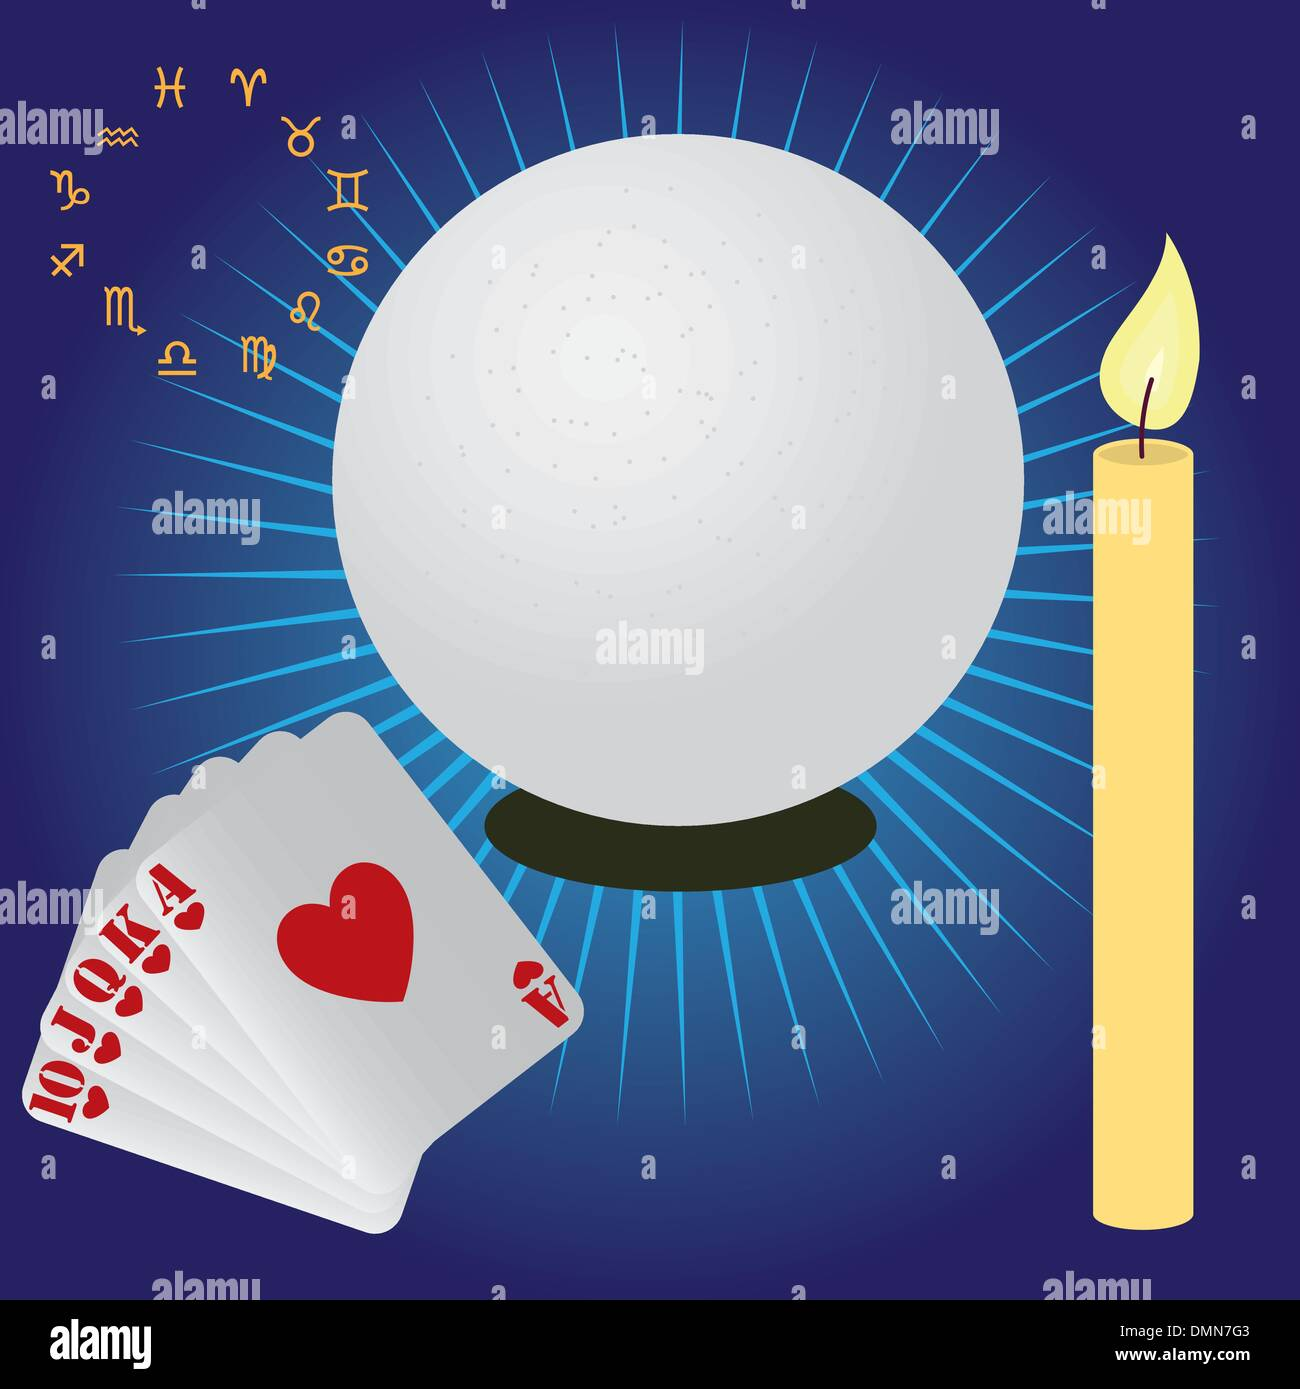 Items for fortune telling. - Stock Vector